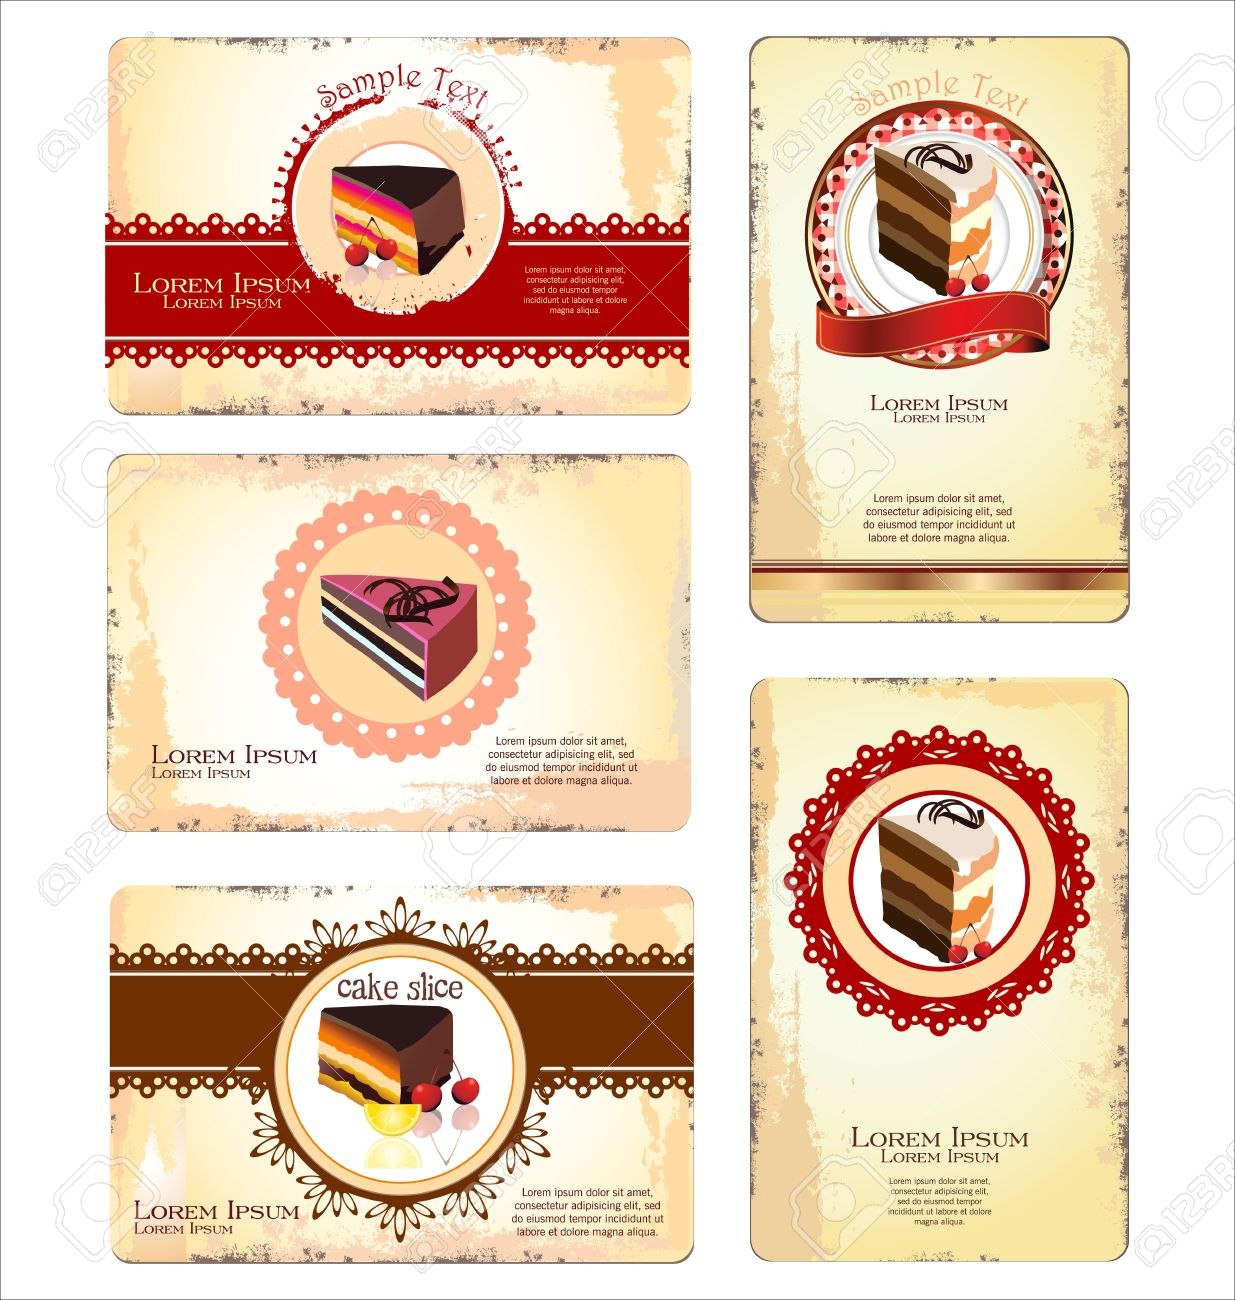 Coffeetea And Cakes Menu Or Business Card Template Royalty Free Intended For Cake Business Cards Templates Free